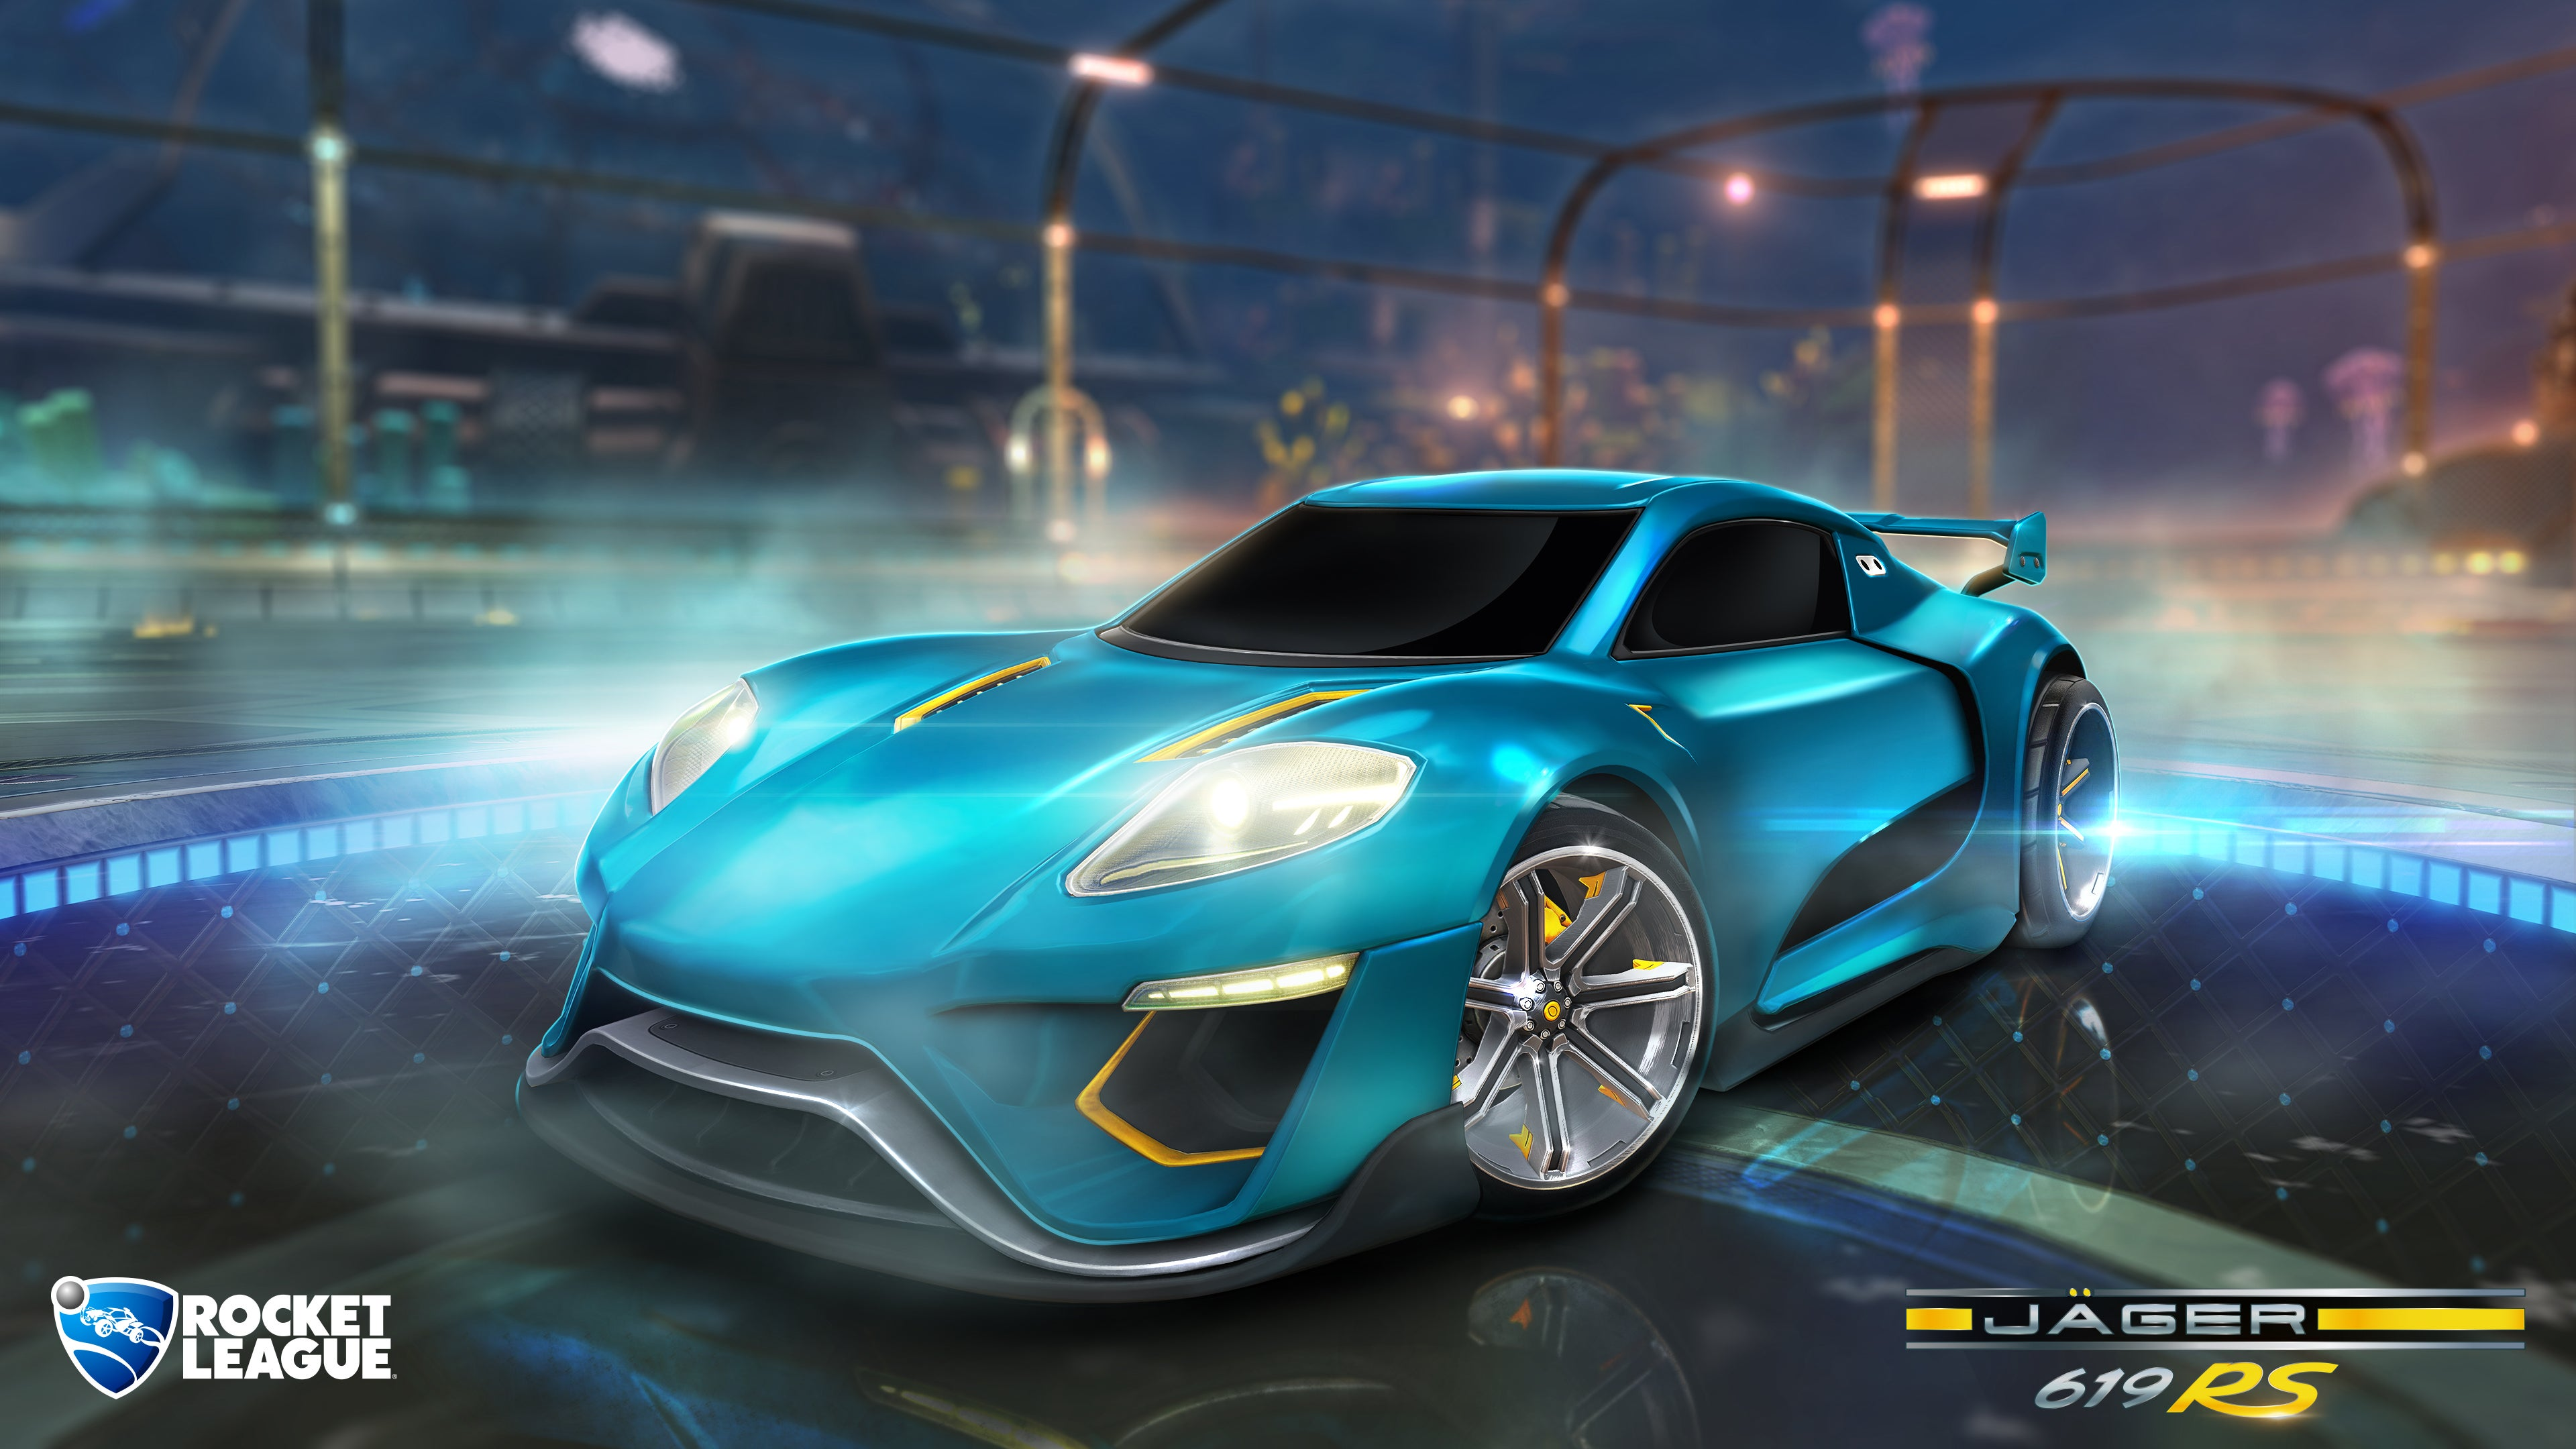 Rocket League Metalic Paint Car